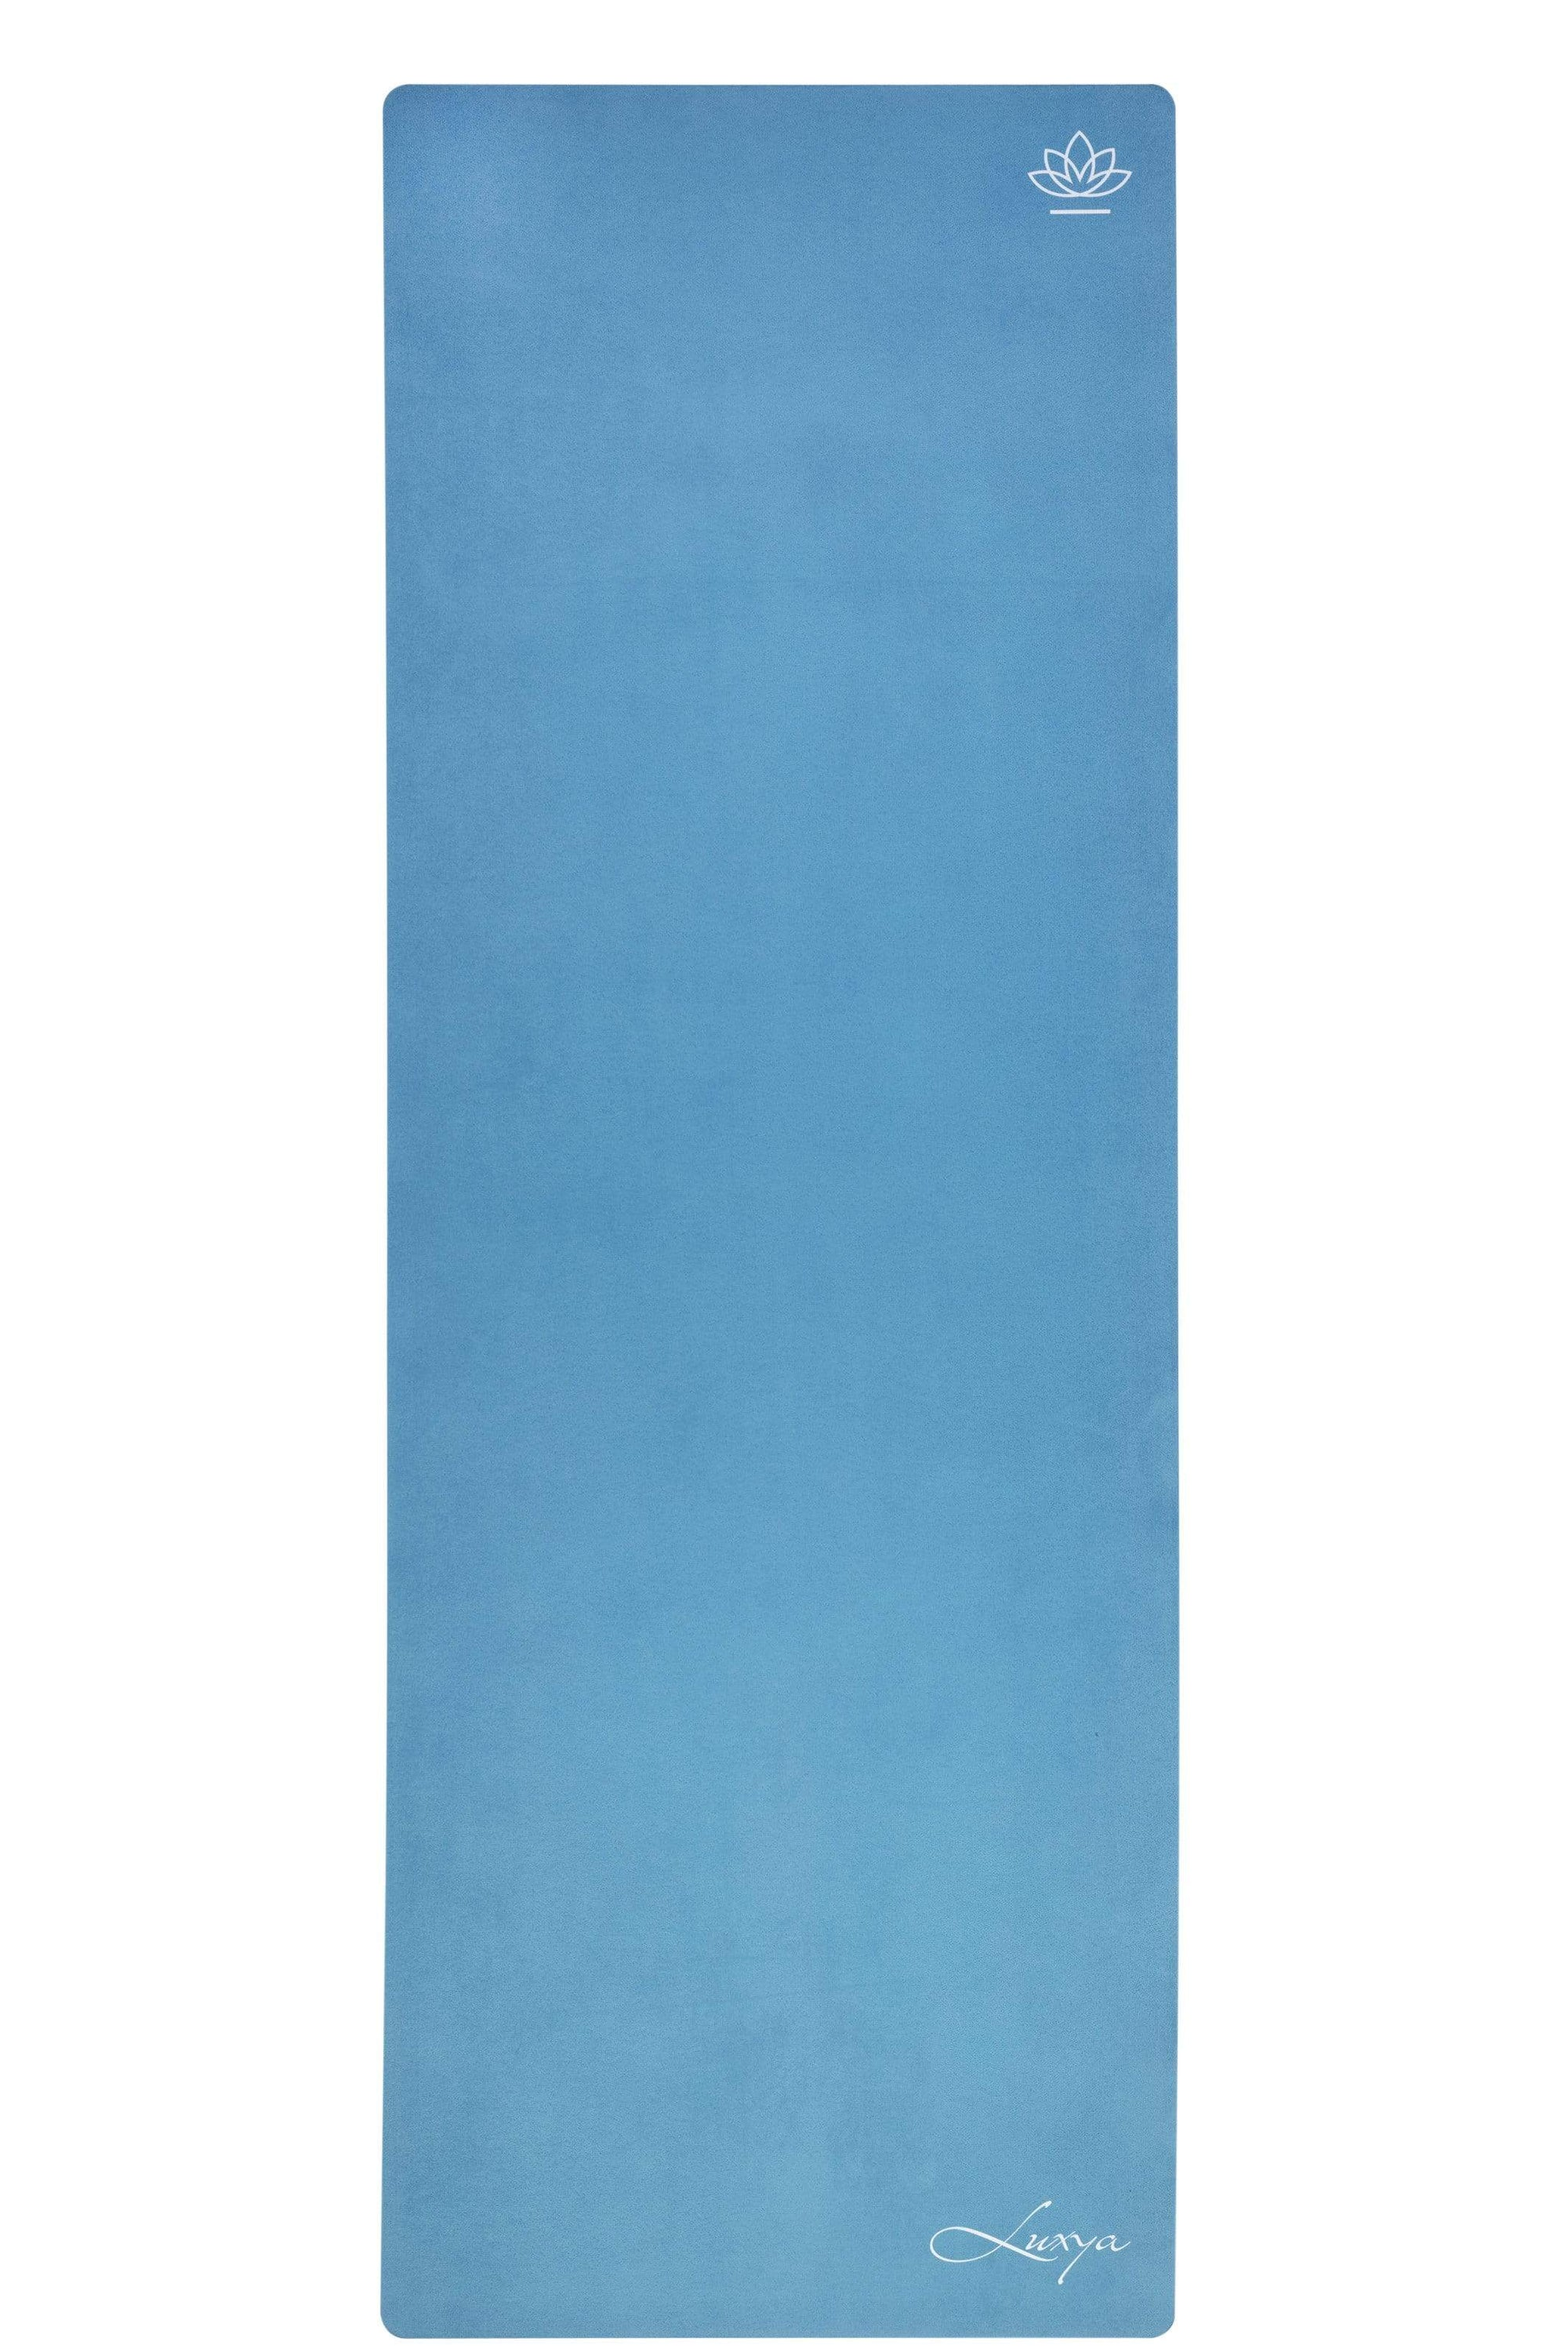 Luxury Yoga Mat Apheleia Blue - 3mm Luxury Yoga Mat Luxya Singapore